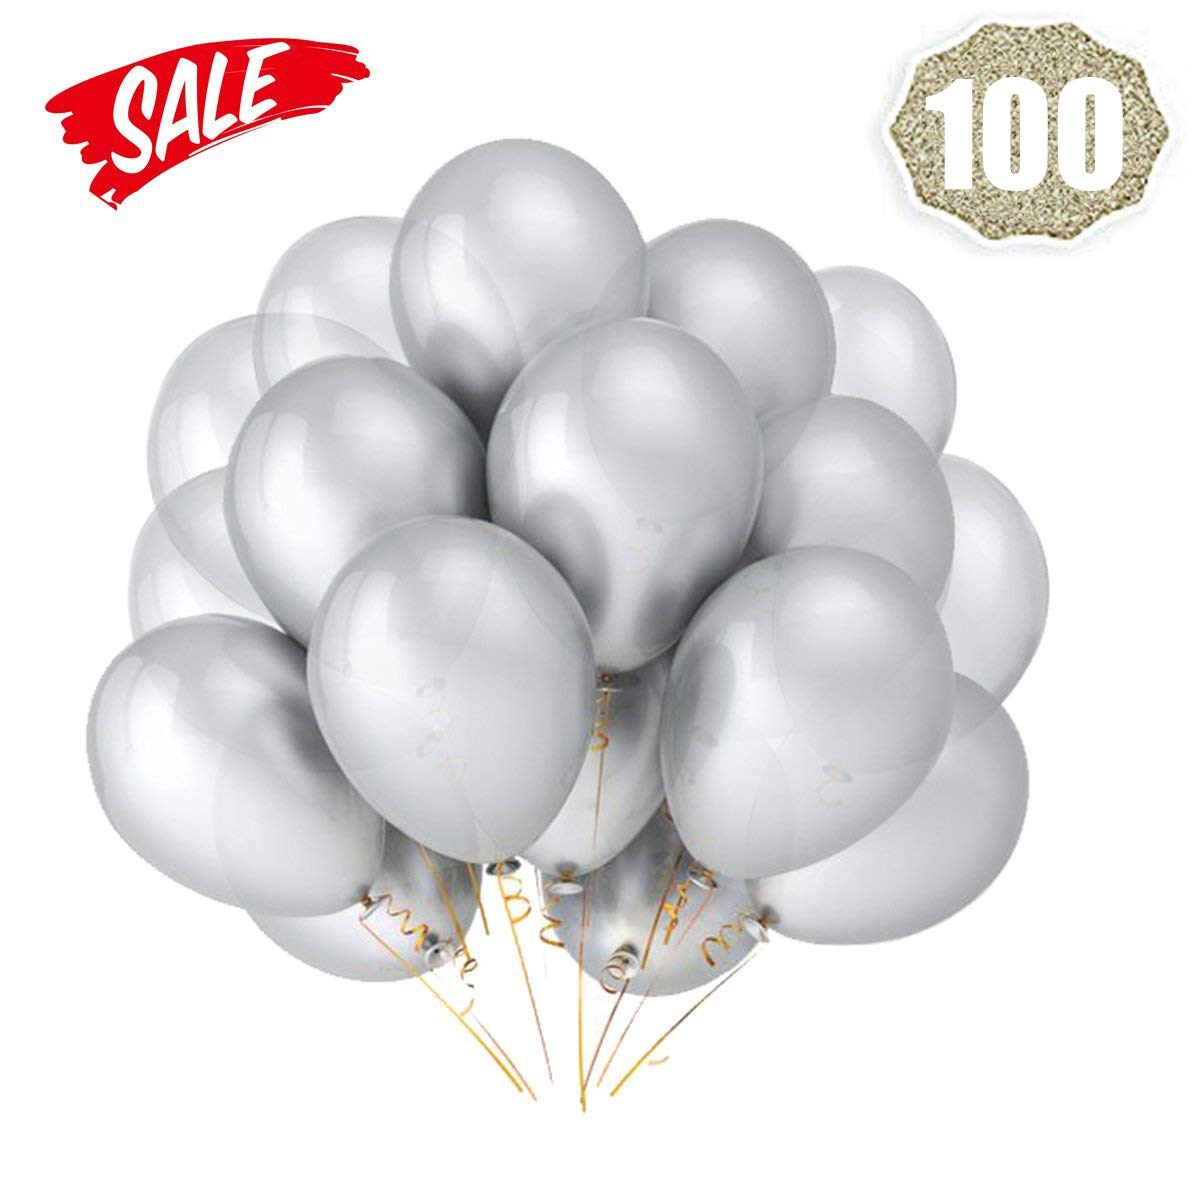 Silver Balloons Hovebeaty 12 Inches thicken Latex Metallic Balloons 100 Pack for Wedding Party Baby Shower Christmas Birthday Carnival Party Decoration Supplies